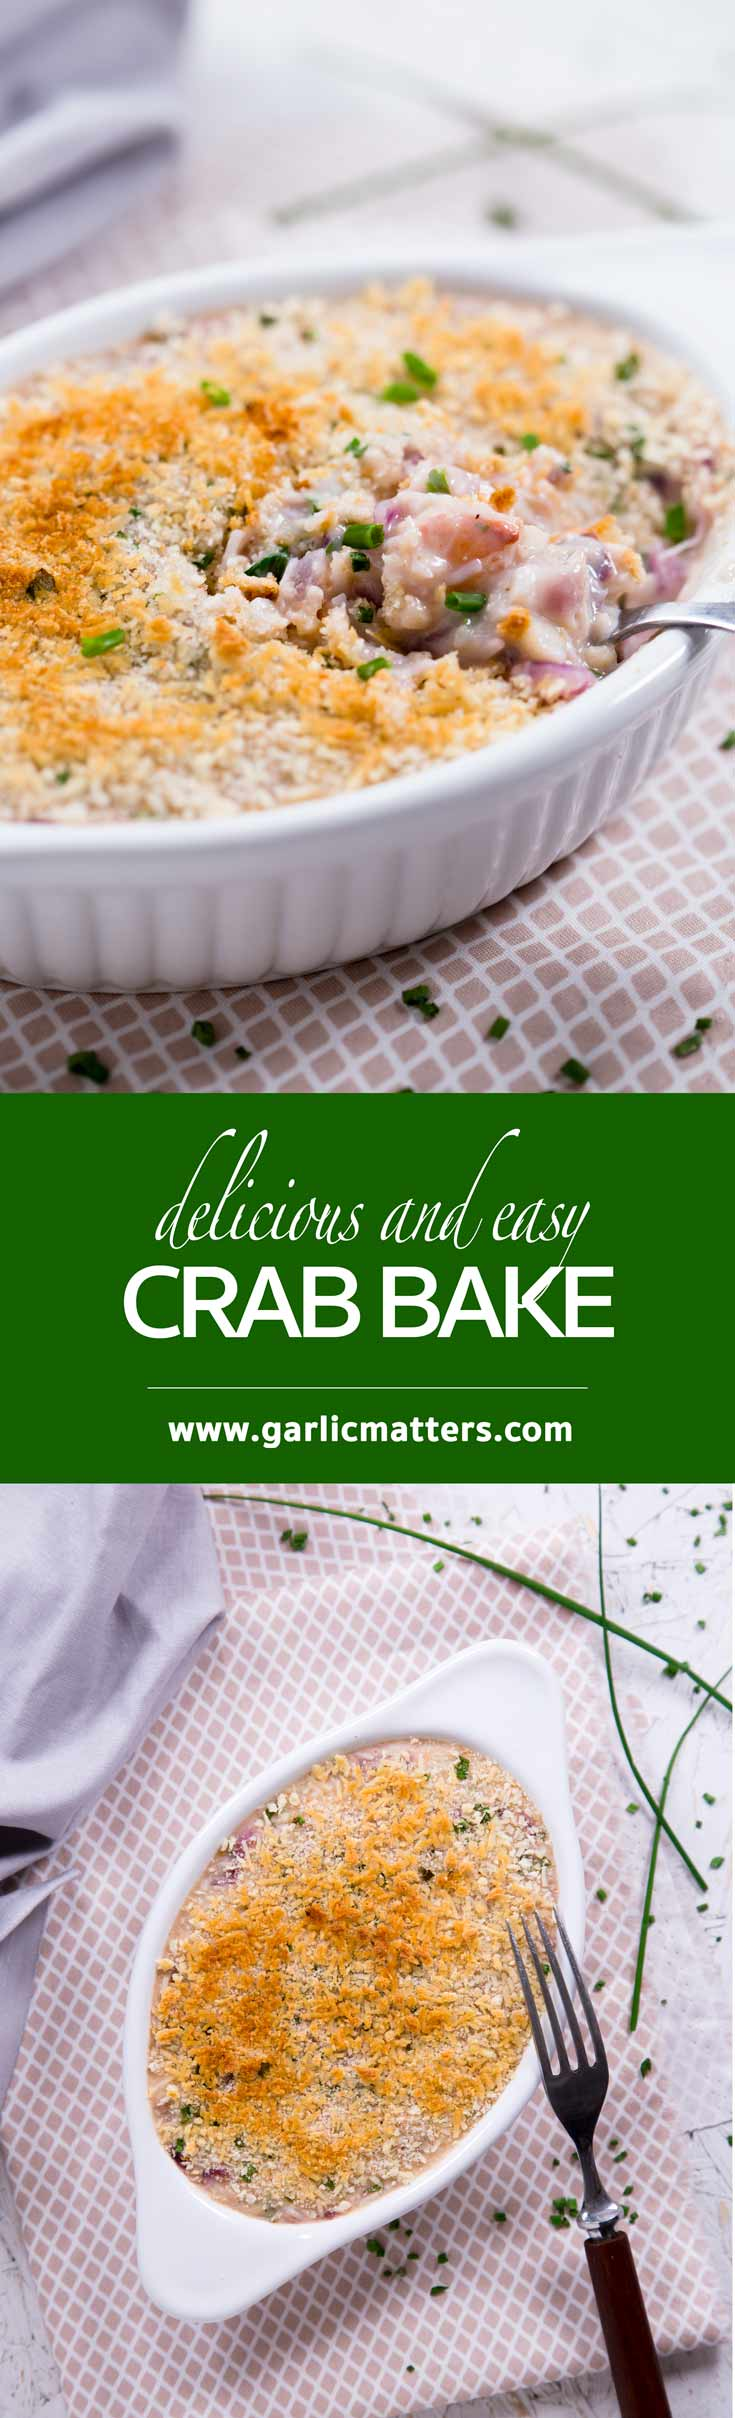 Delicious crab bake is a classy appetizer or light main course idea for all seafood lovers. Flavourful, creamy & really easy, 40 min recipe.